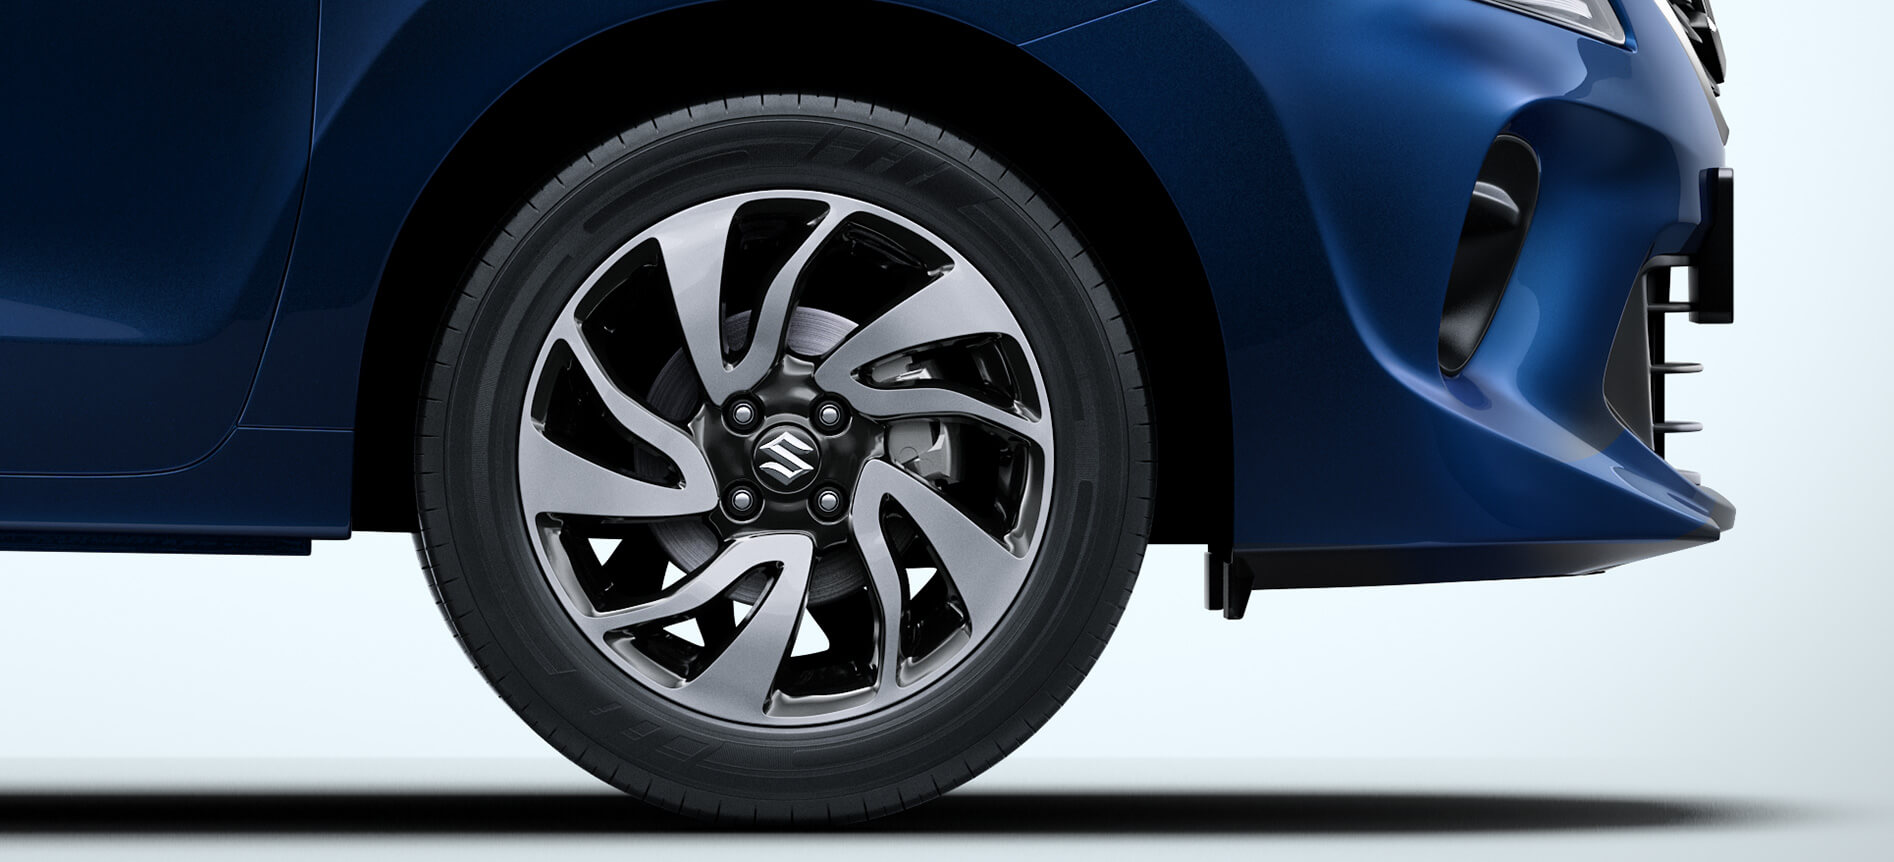 New Baleno - Alloy Wheel